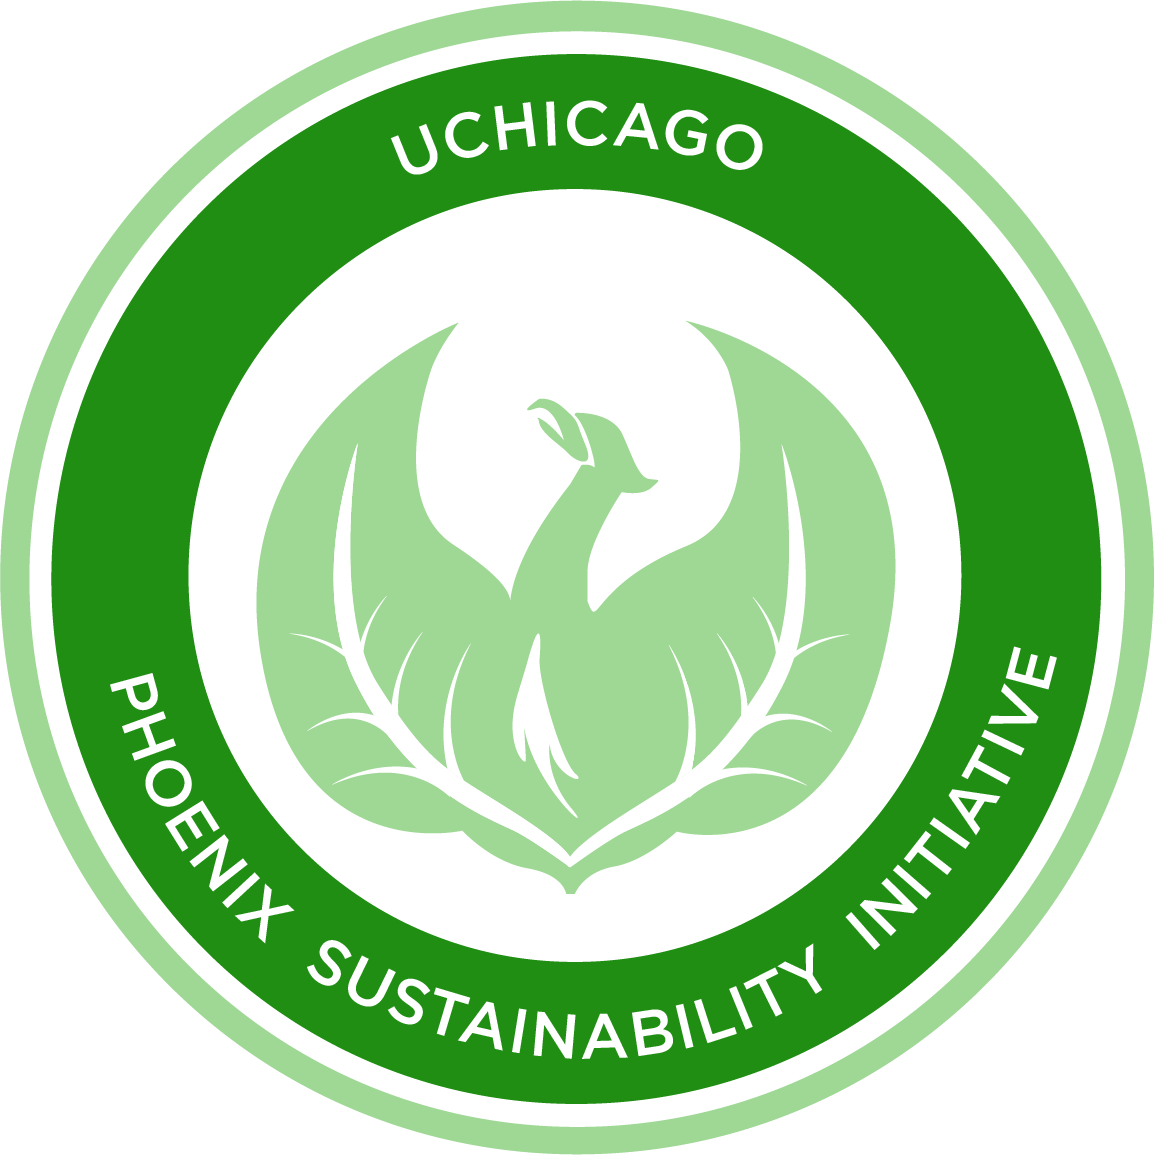 University of Chicago Phoenix Sustainability Initiative